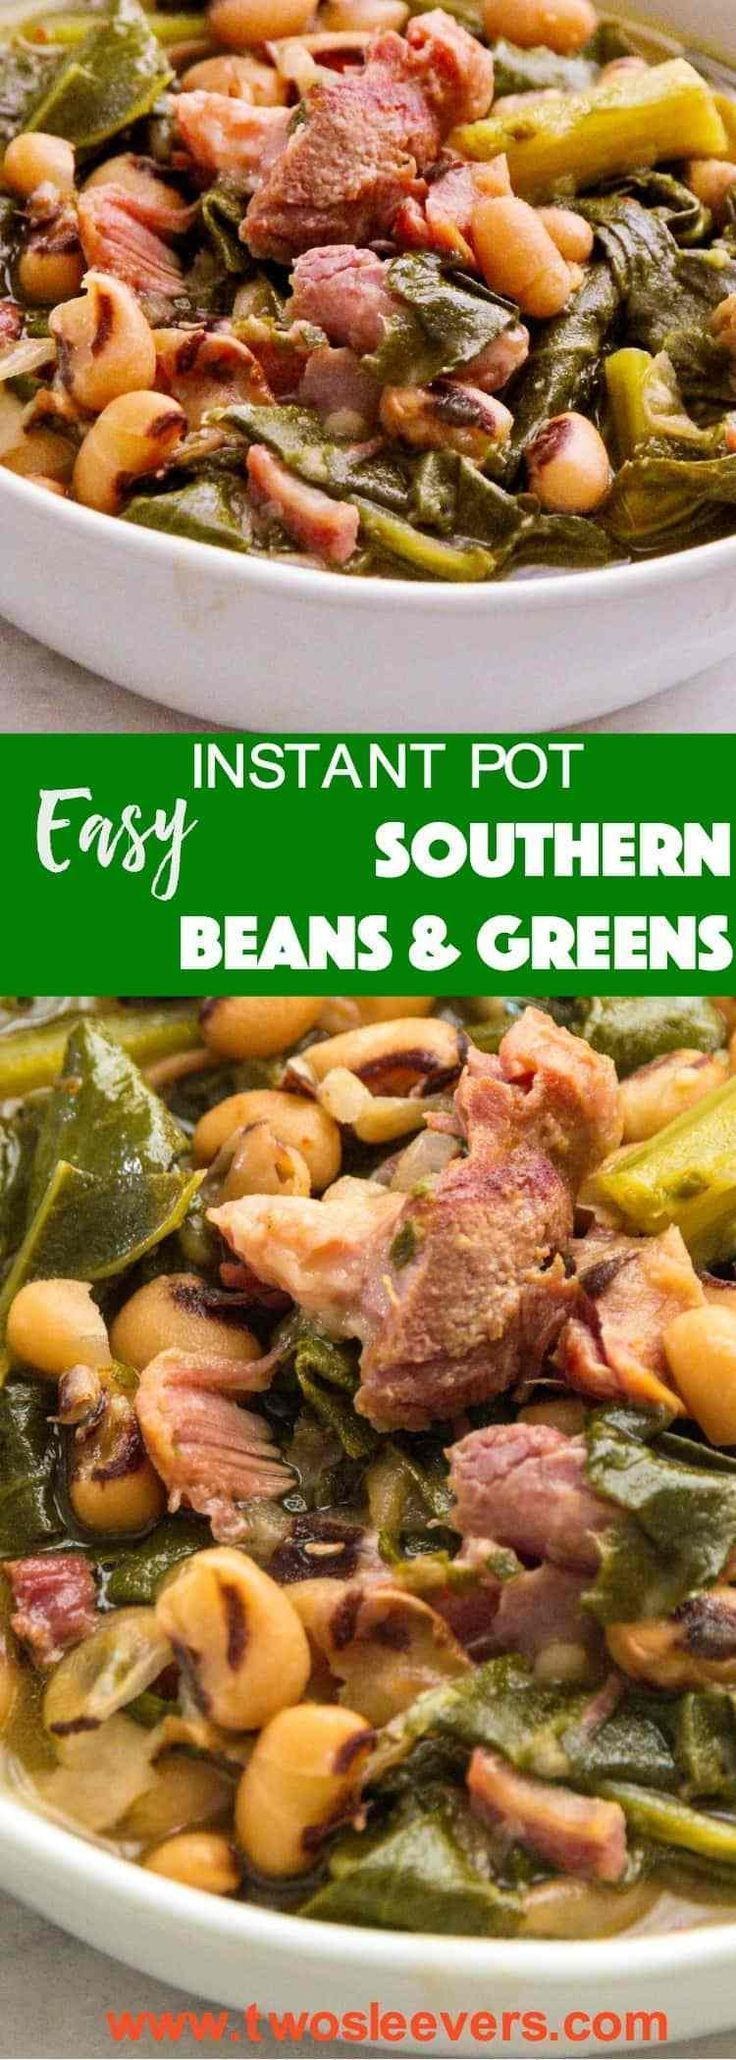 Easy Instant Pot Souther Beans & Greens   Insant Pot Recipe   Instant Pot DInner   Instant Pot Thanksgiving   Thanksgiving Recipe   Ham and Beans Recipe  